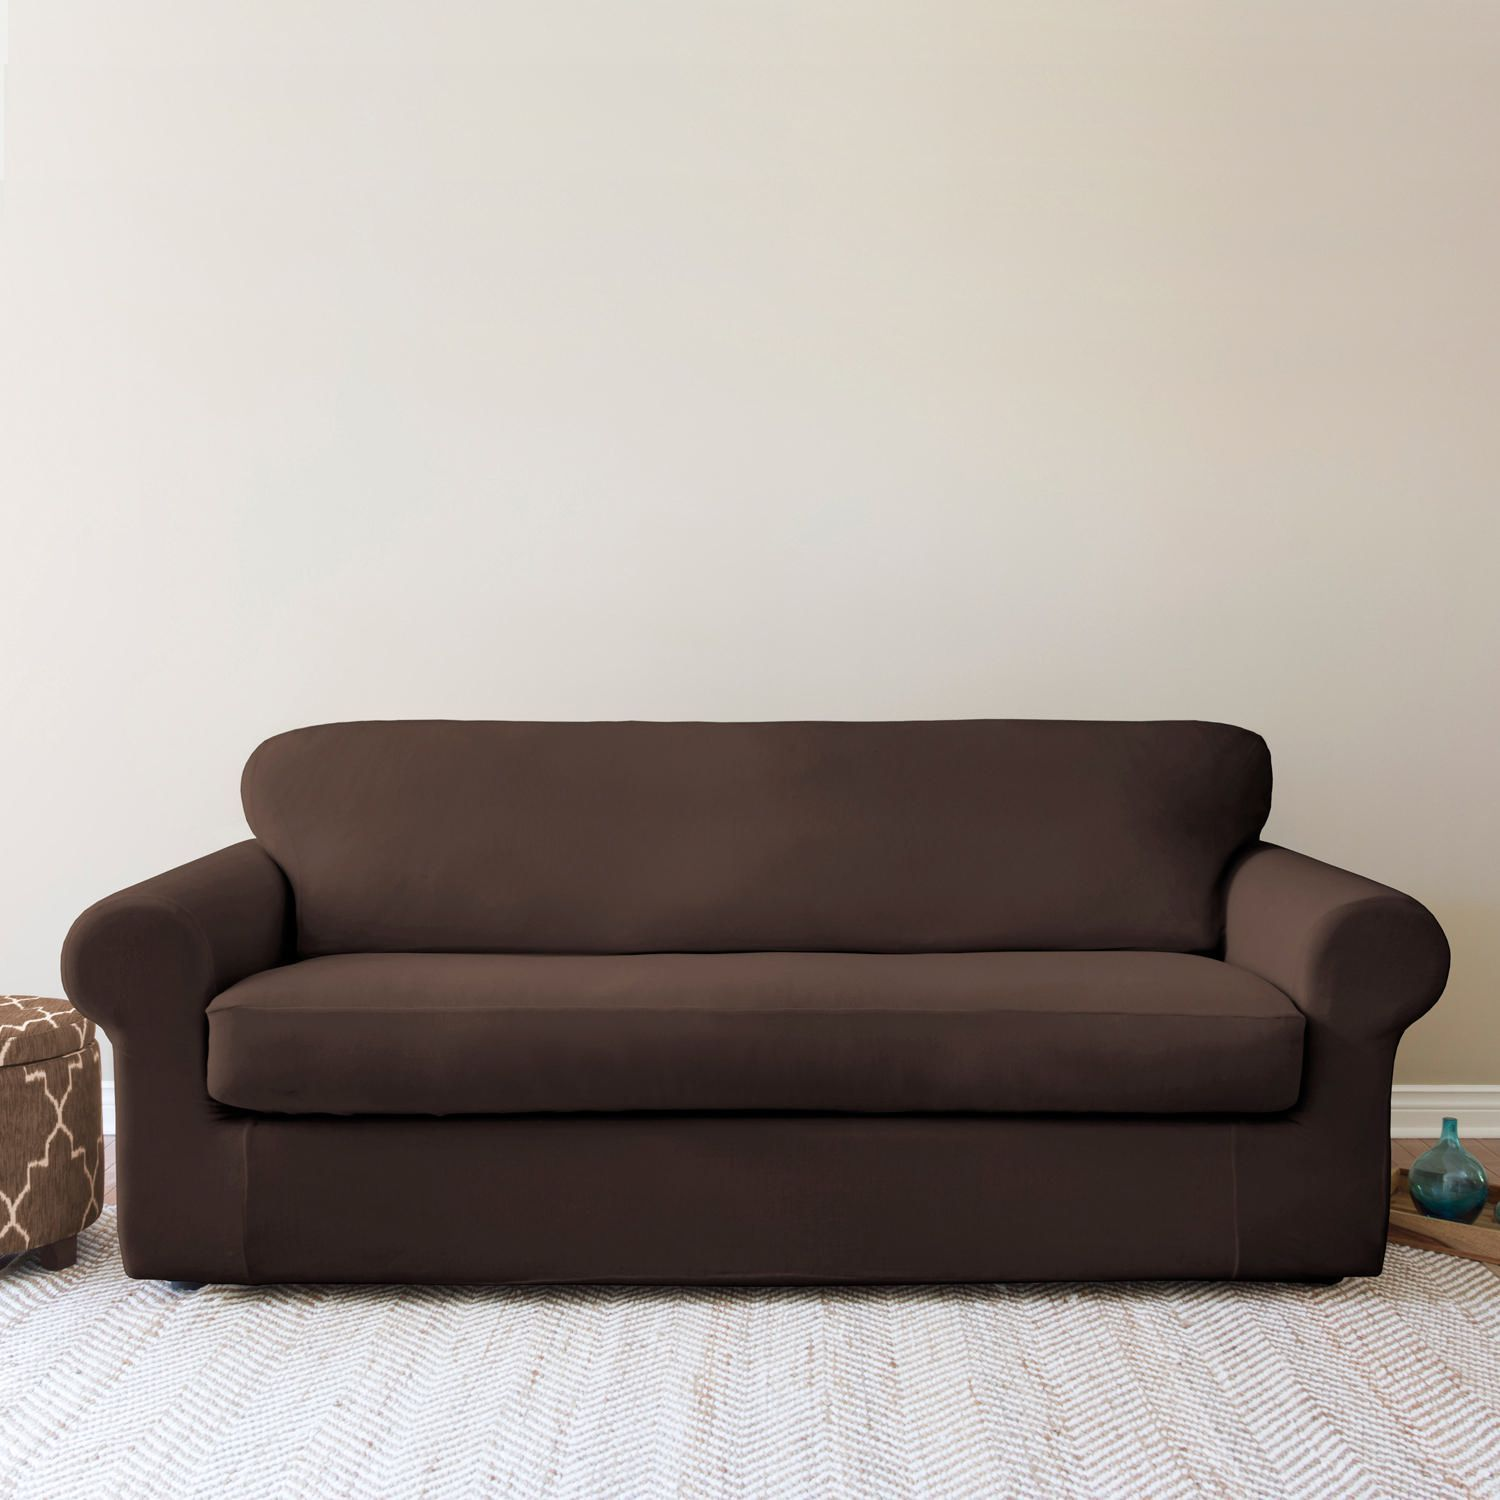 10 Target Sofa Cover Most Awesome As